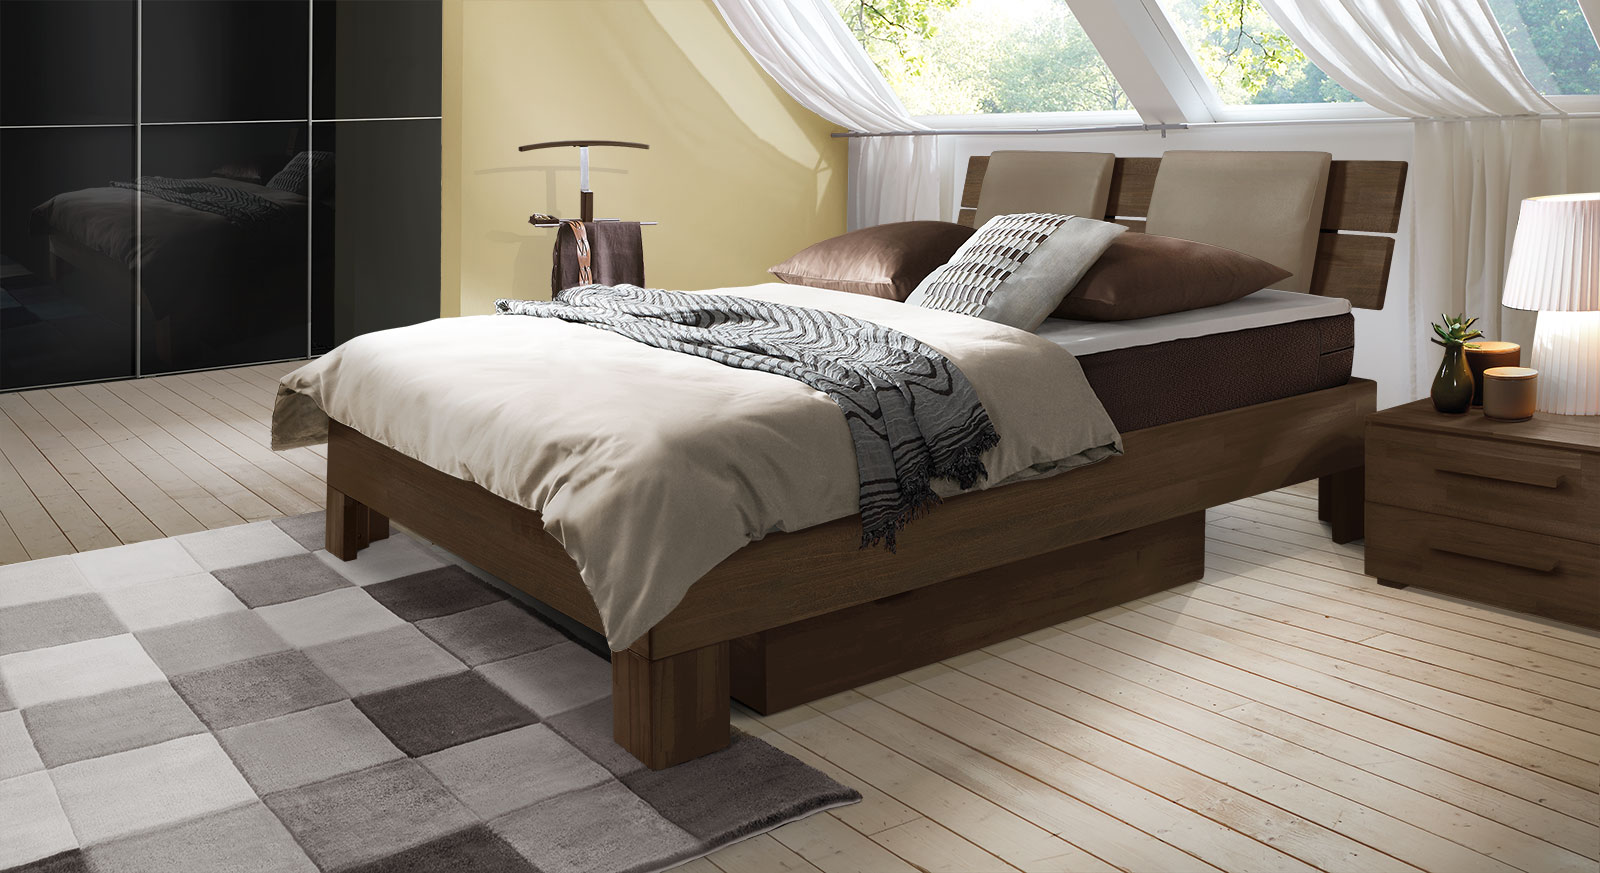 Boxspringbett Port-Louis in Buche wenge